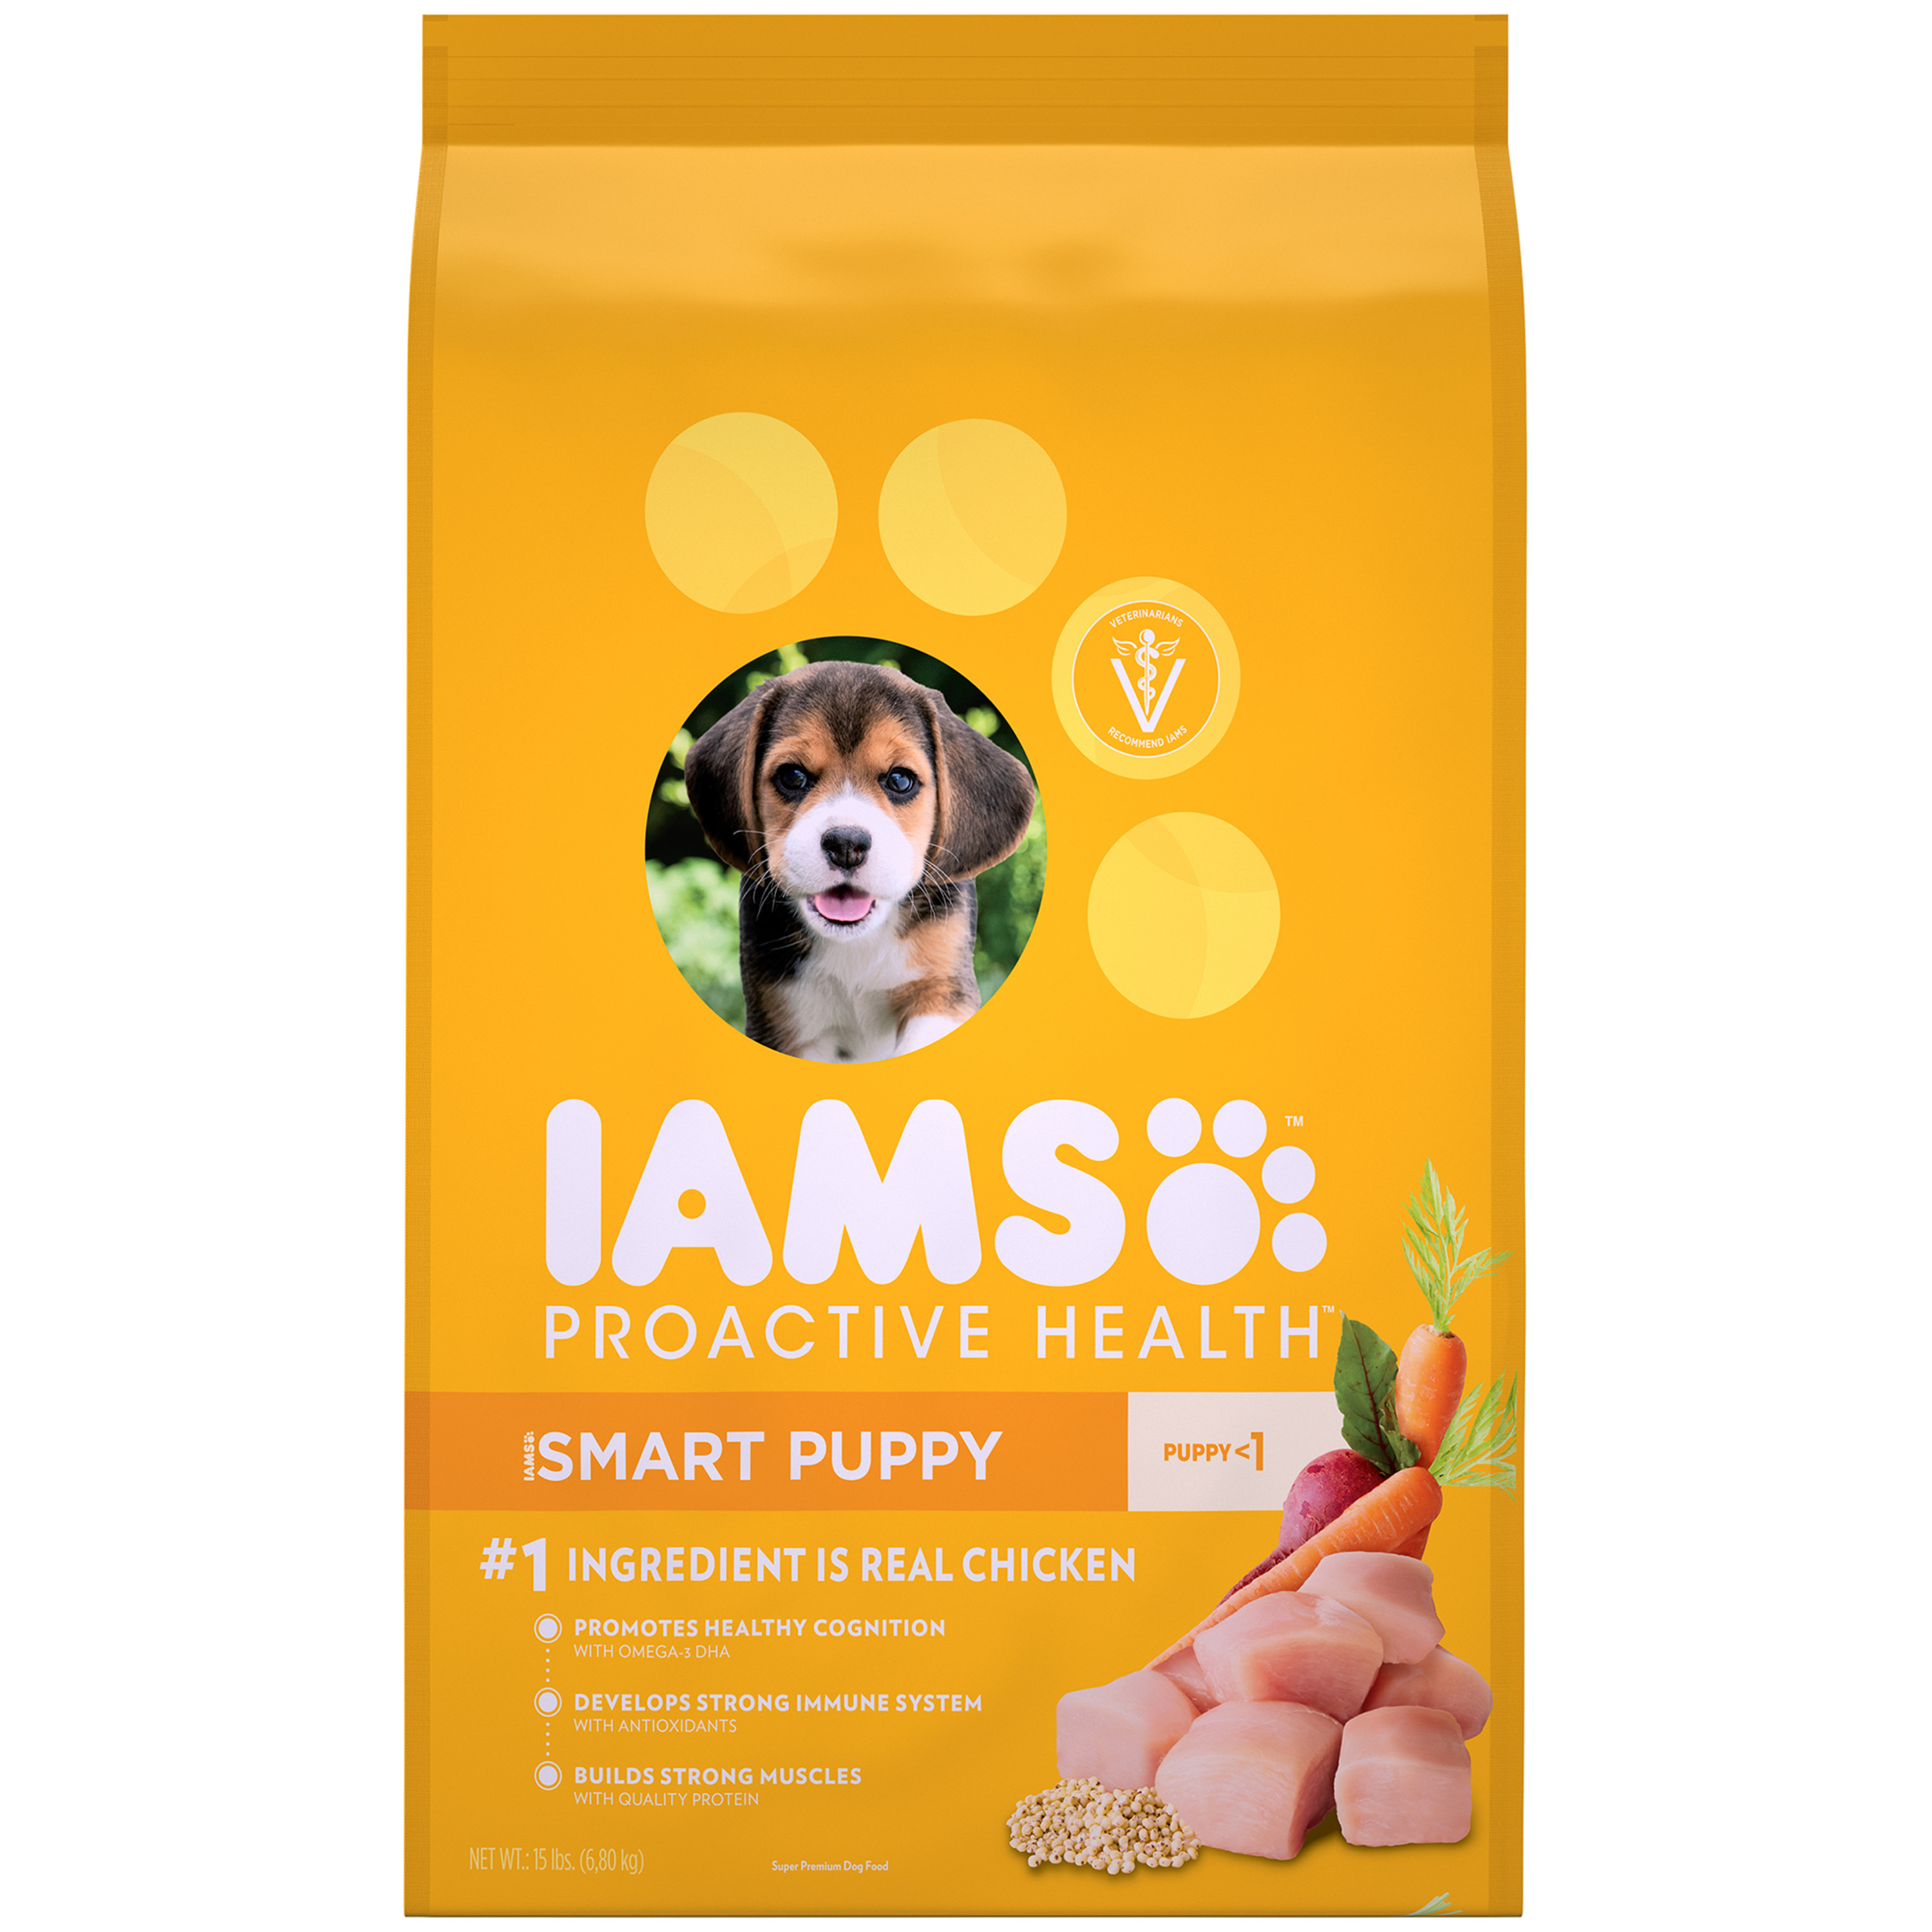 Iams Proactive Health Smart Puppy Dry Dog Food, Chicken, 15 Lb